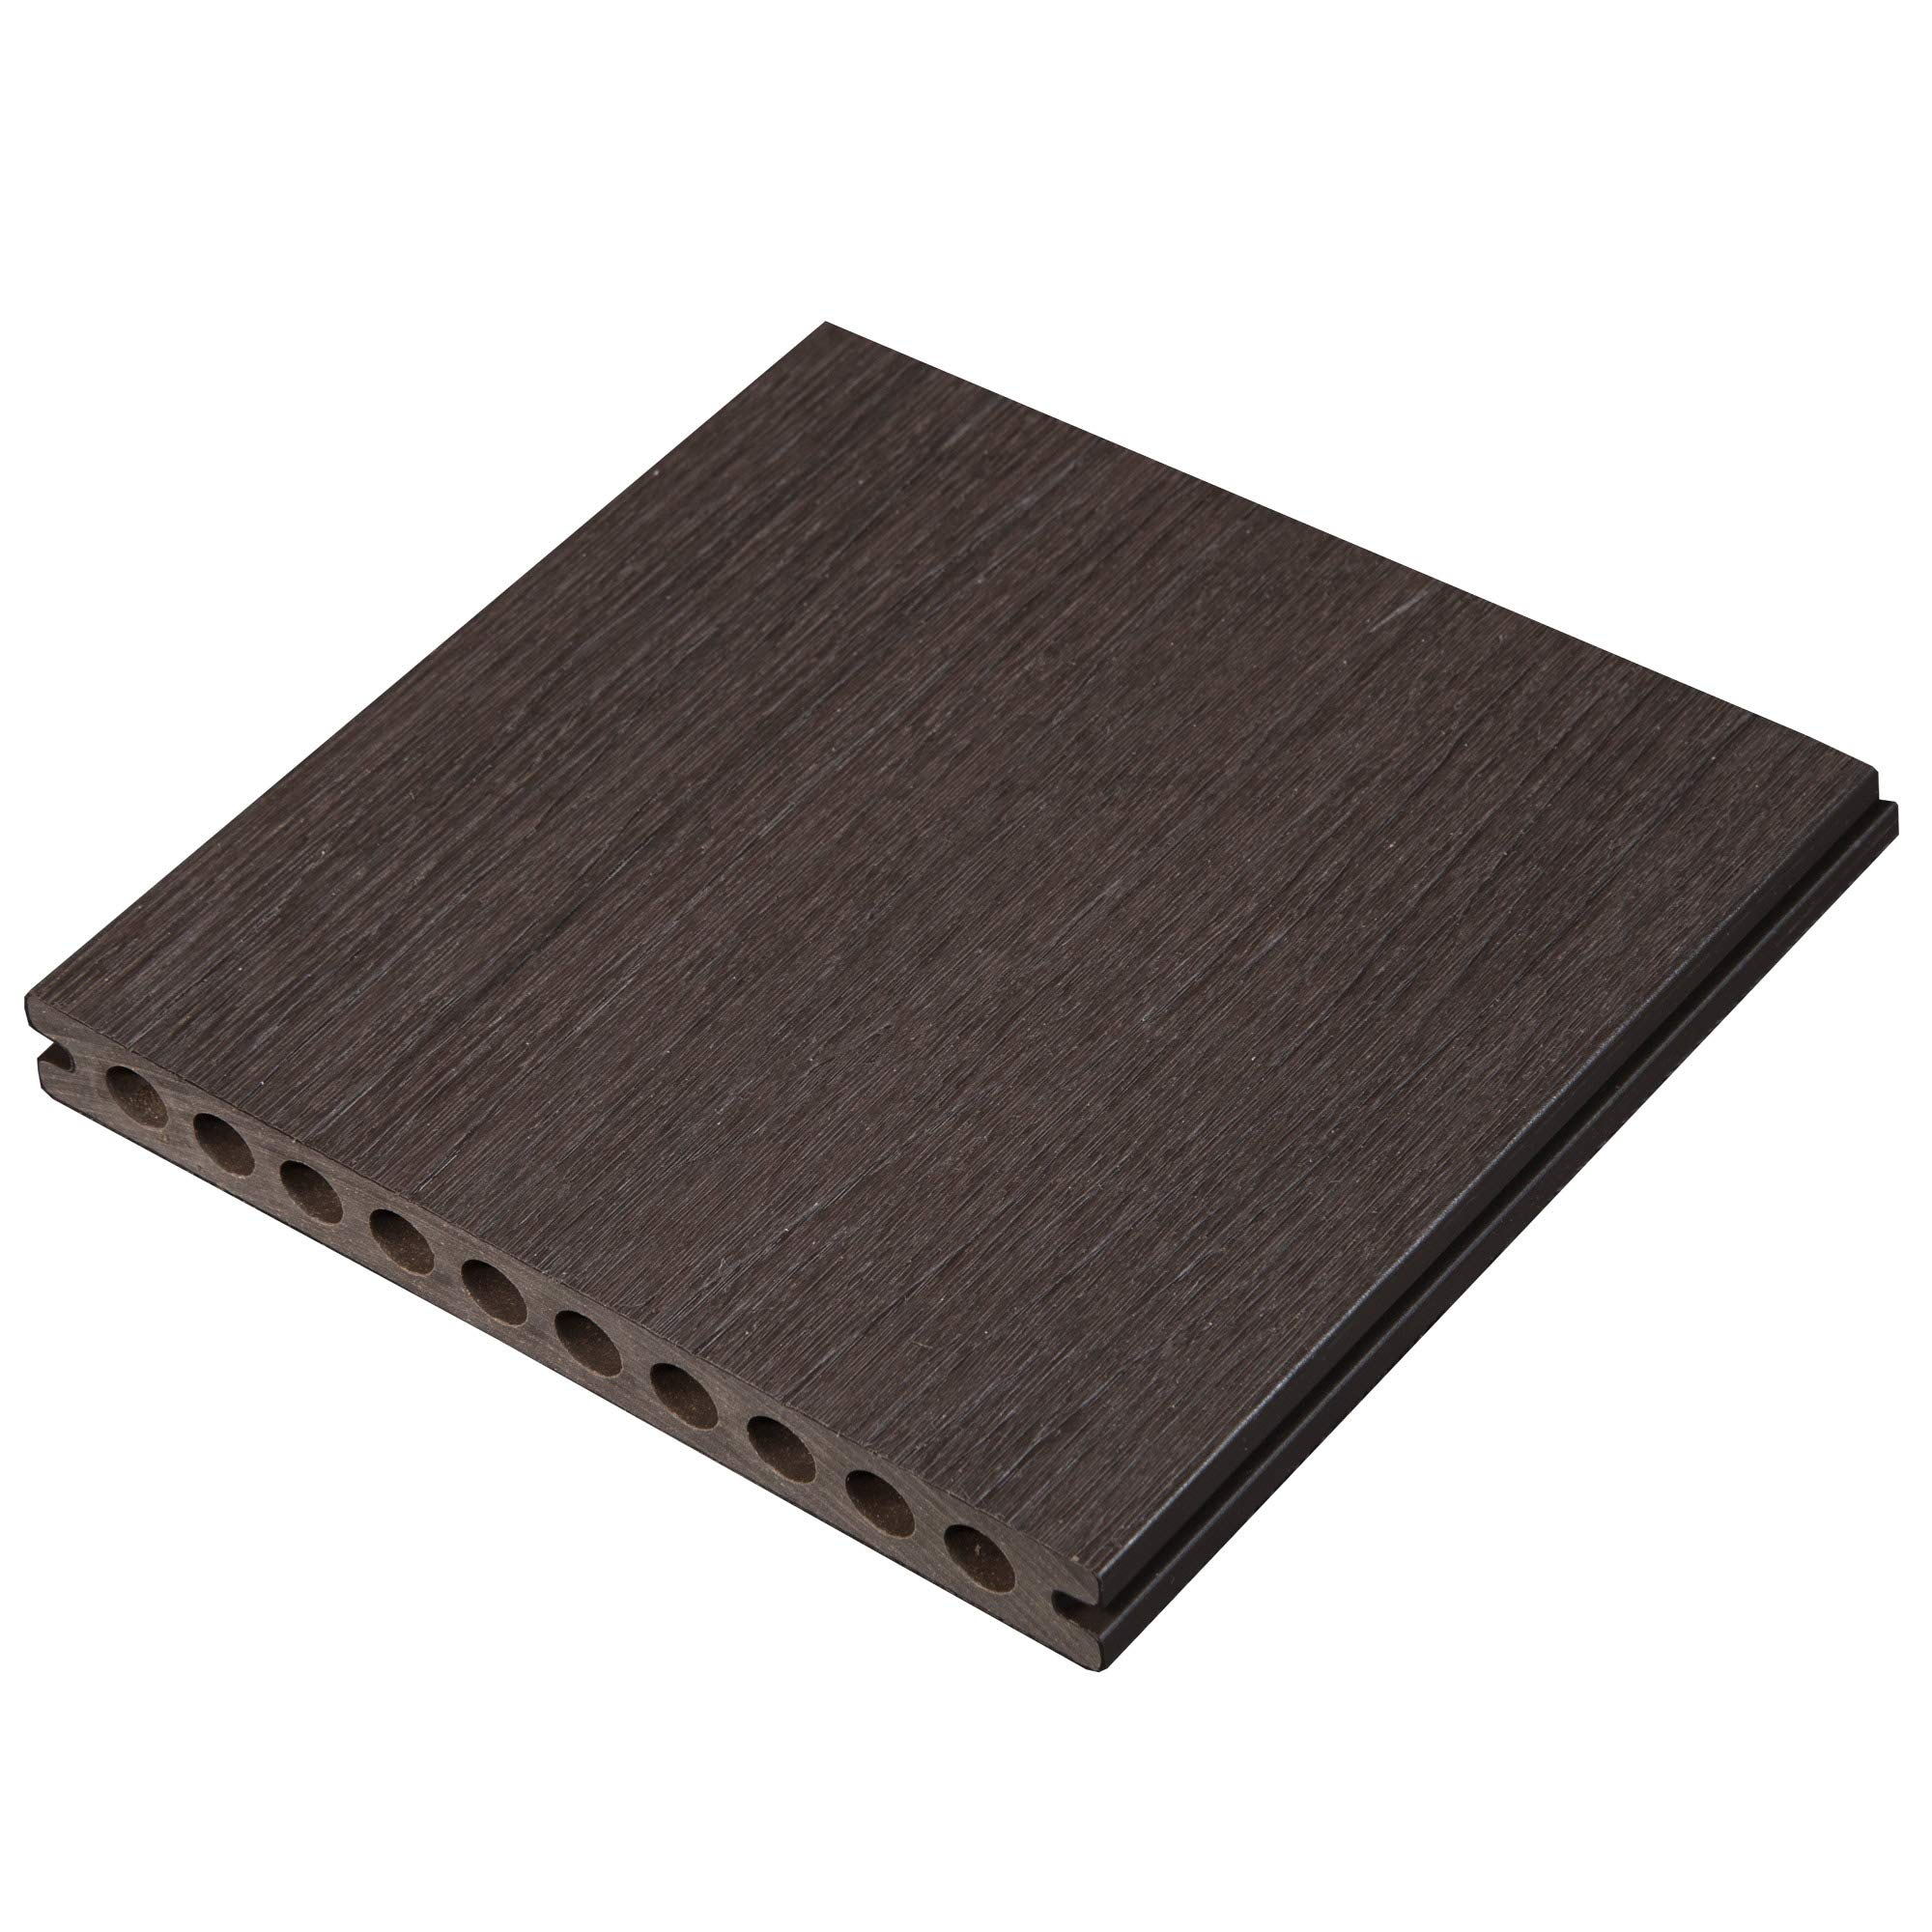 4'' Sample - Caribou 3G Wide Composite Decking - NO Sleeve